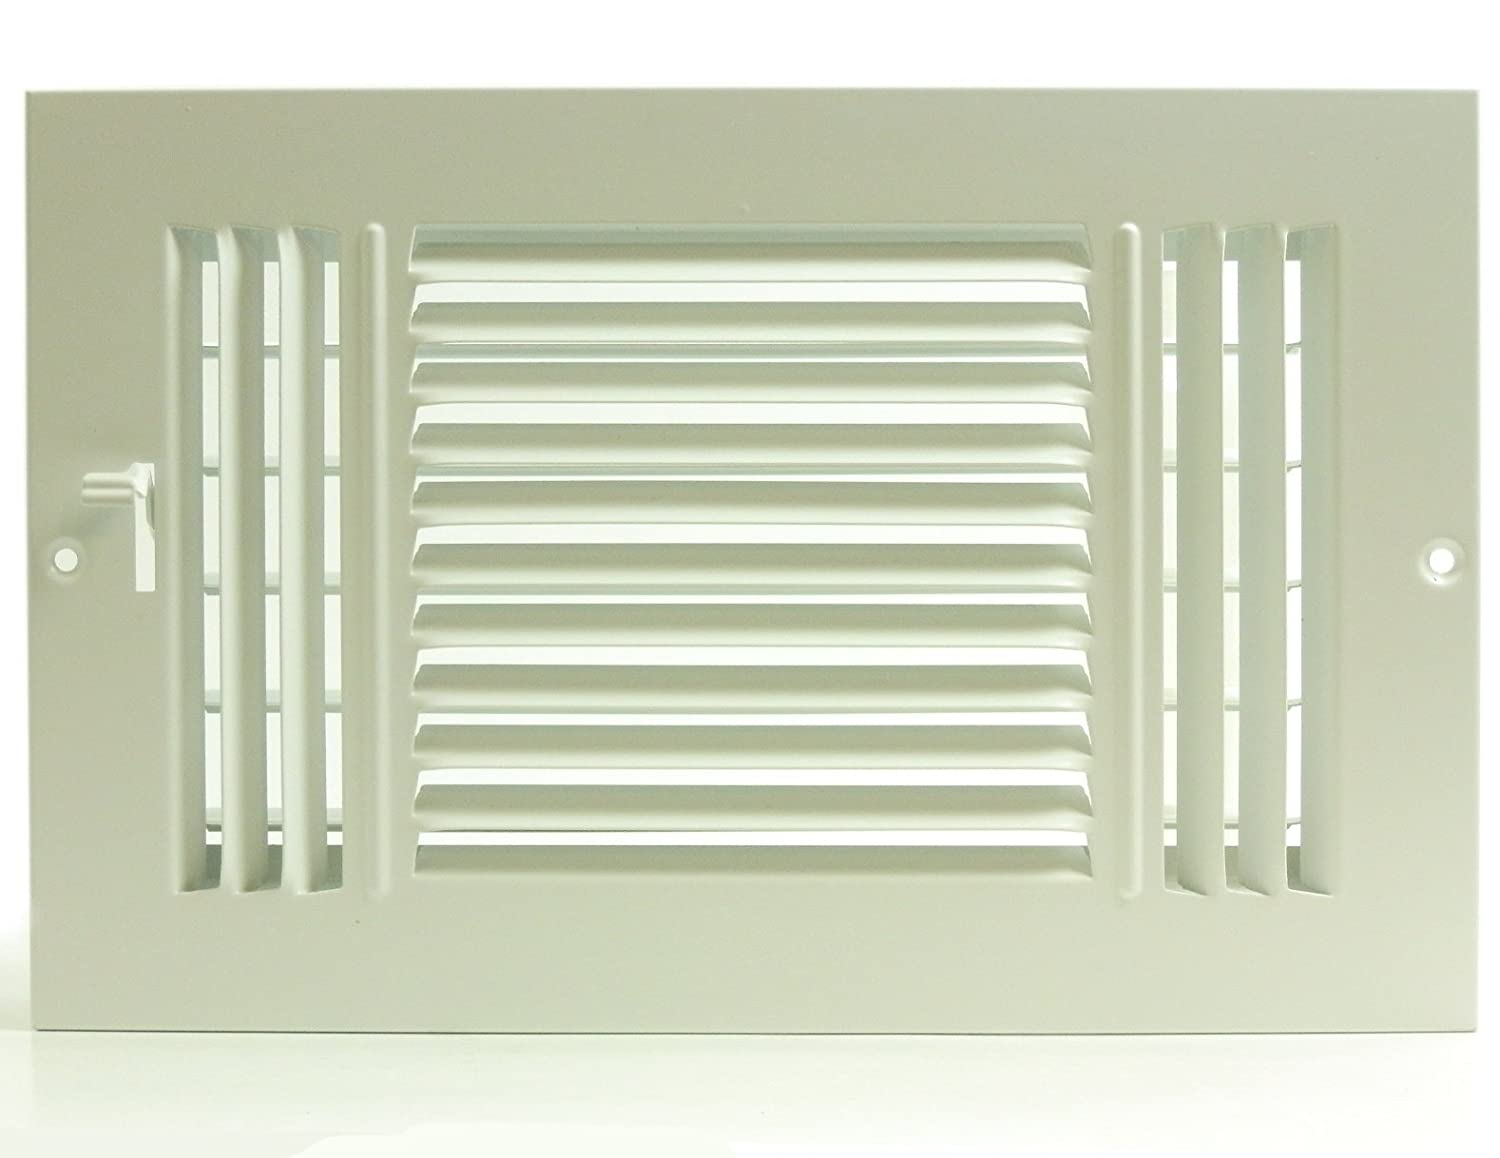 #6E7E4E 12w X 8h Fixed Stamp 3 Way AIR SUPPLY DIFFUSER HVAC  Best 3573 Heating Duct Covers photos with 1500x1158 px on helpvideos.info - Air Conditioners, Air Coolers and more